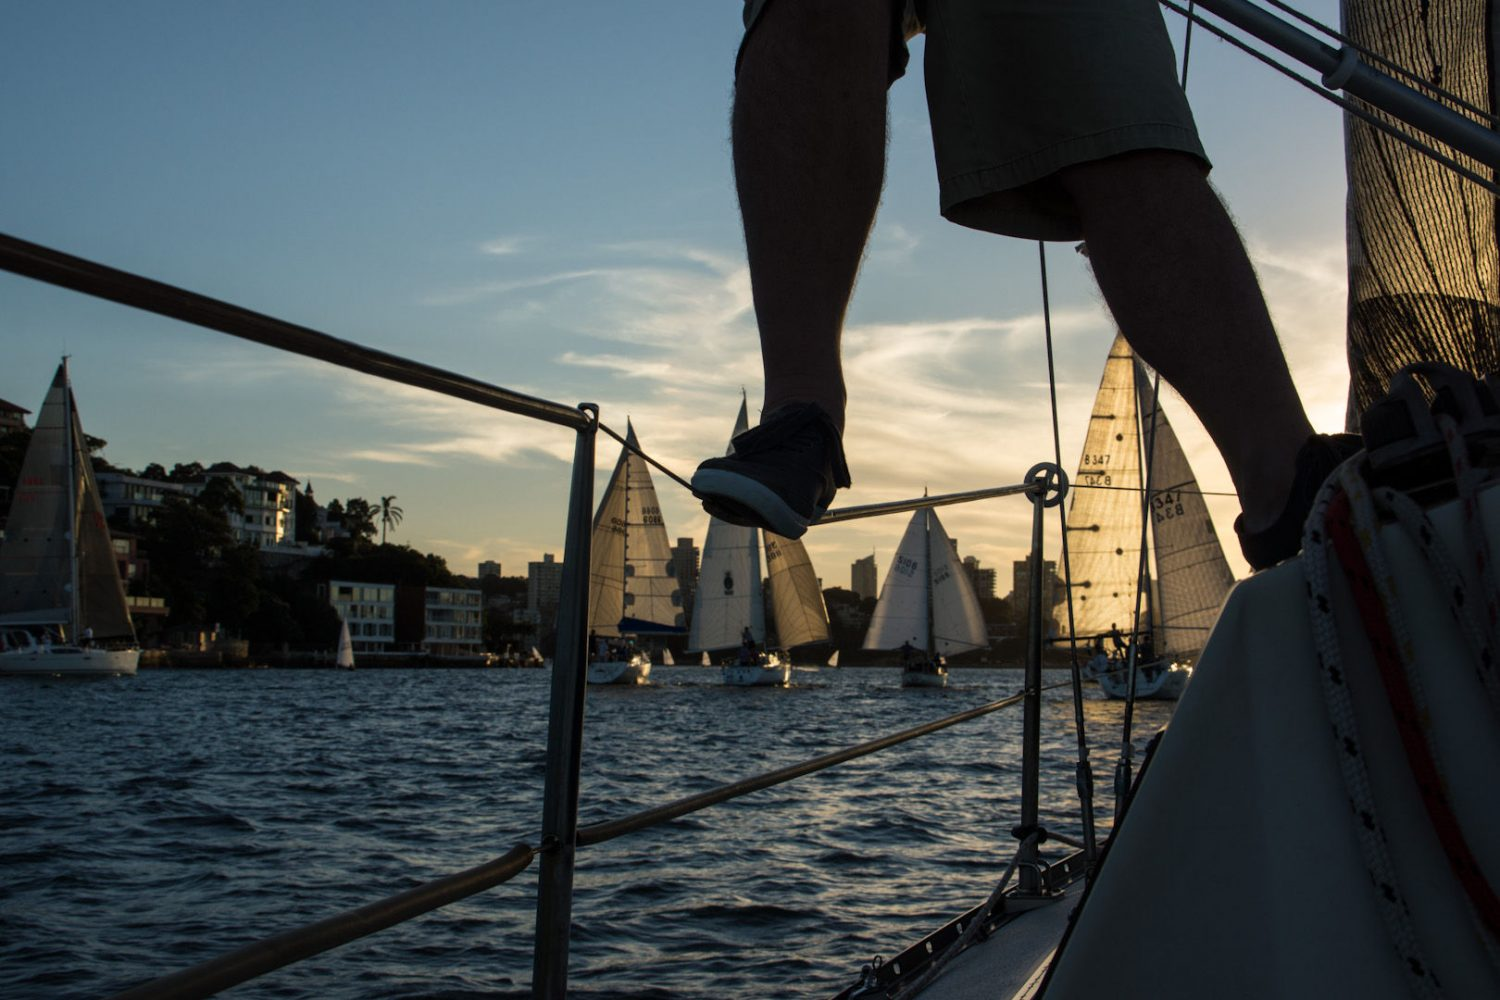 sailing-twilight-sydney-harbour-nsw-australia